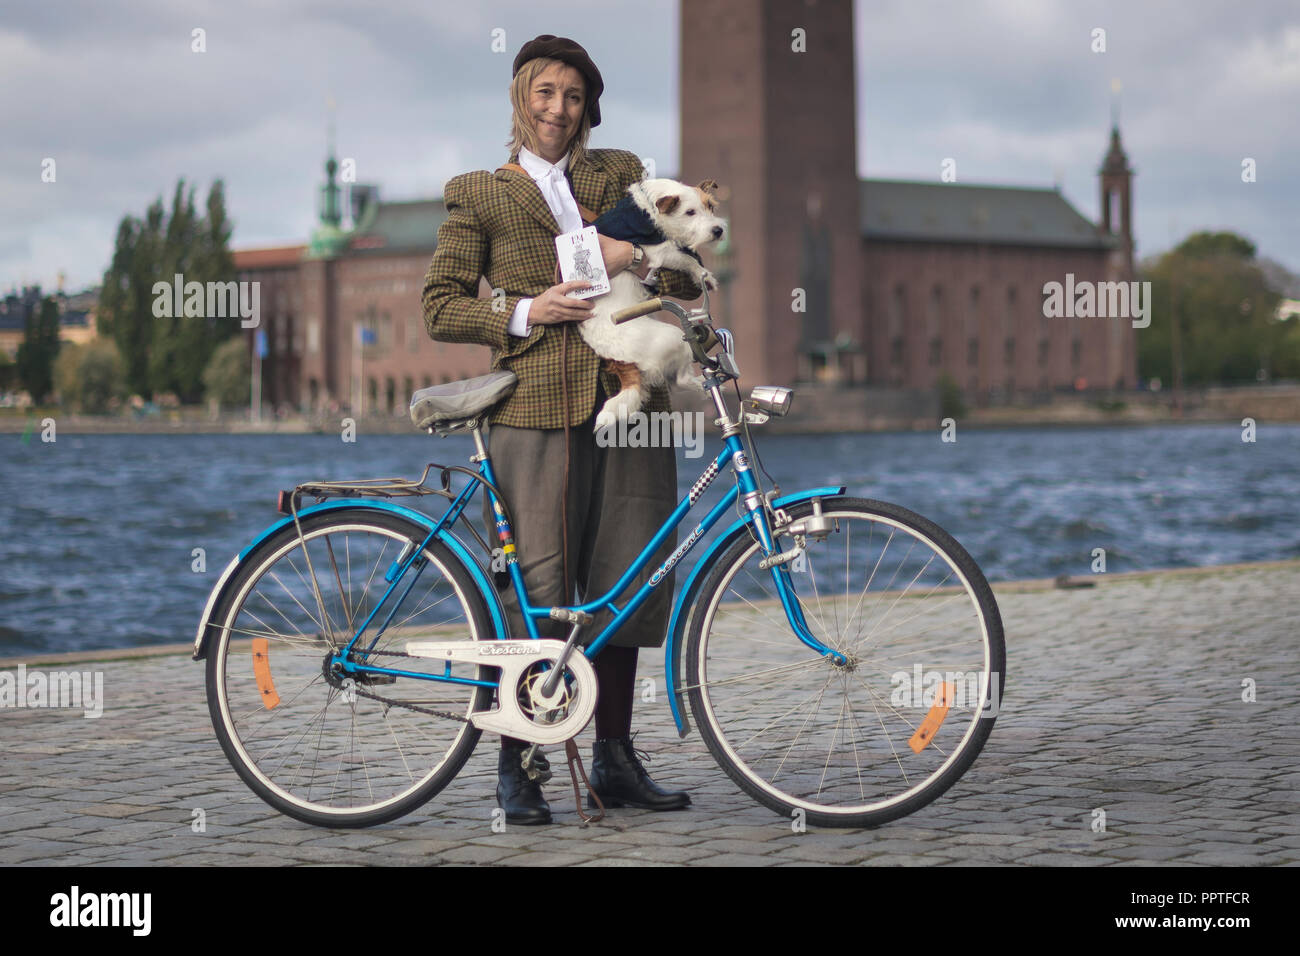 STOCKHOLM, SWEDEN, SEPT 22, 2018: Bike in tweed bicycle tour with vintage bikes and clothes. Before start with backdrop of city hall. Stock Photo